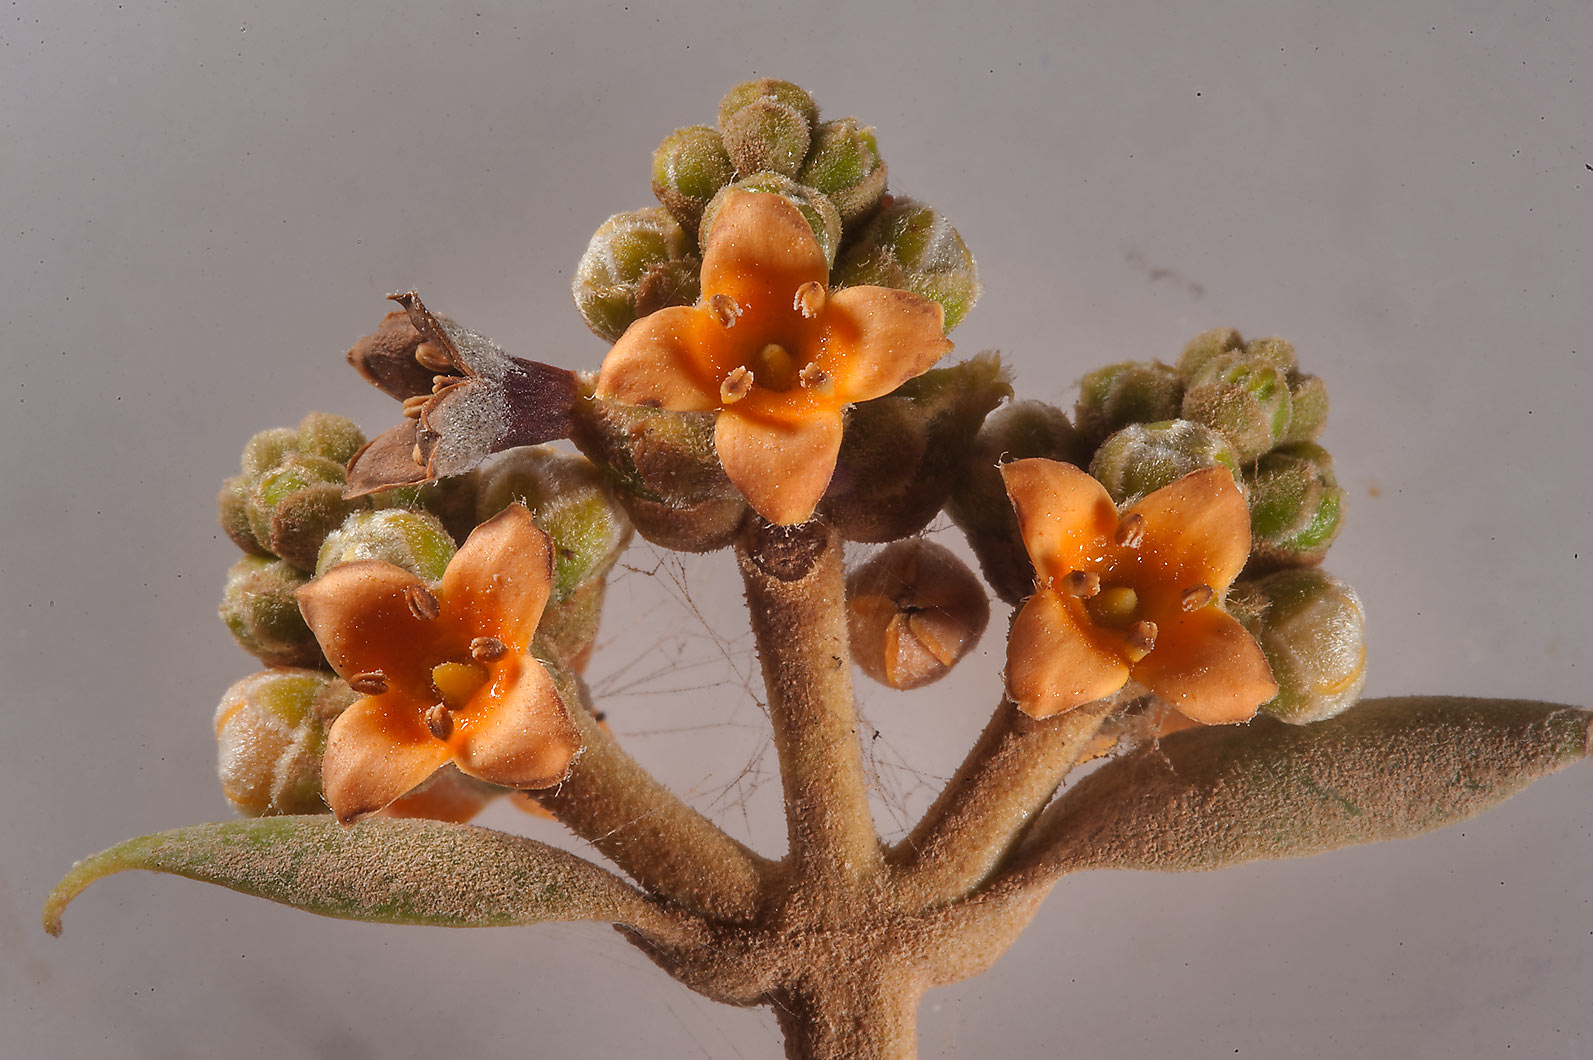 Flowers of mangrove tree (Avicennia marina) on...Jazirat Bin Ghanim). Al Khor, Qatar